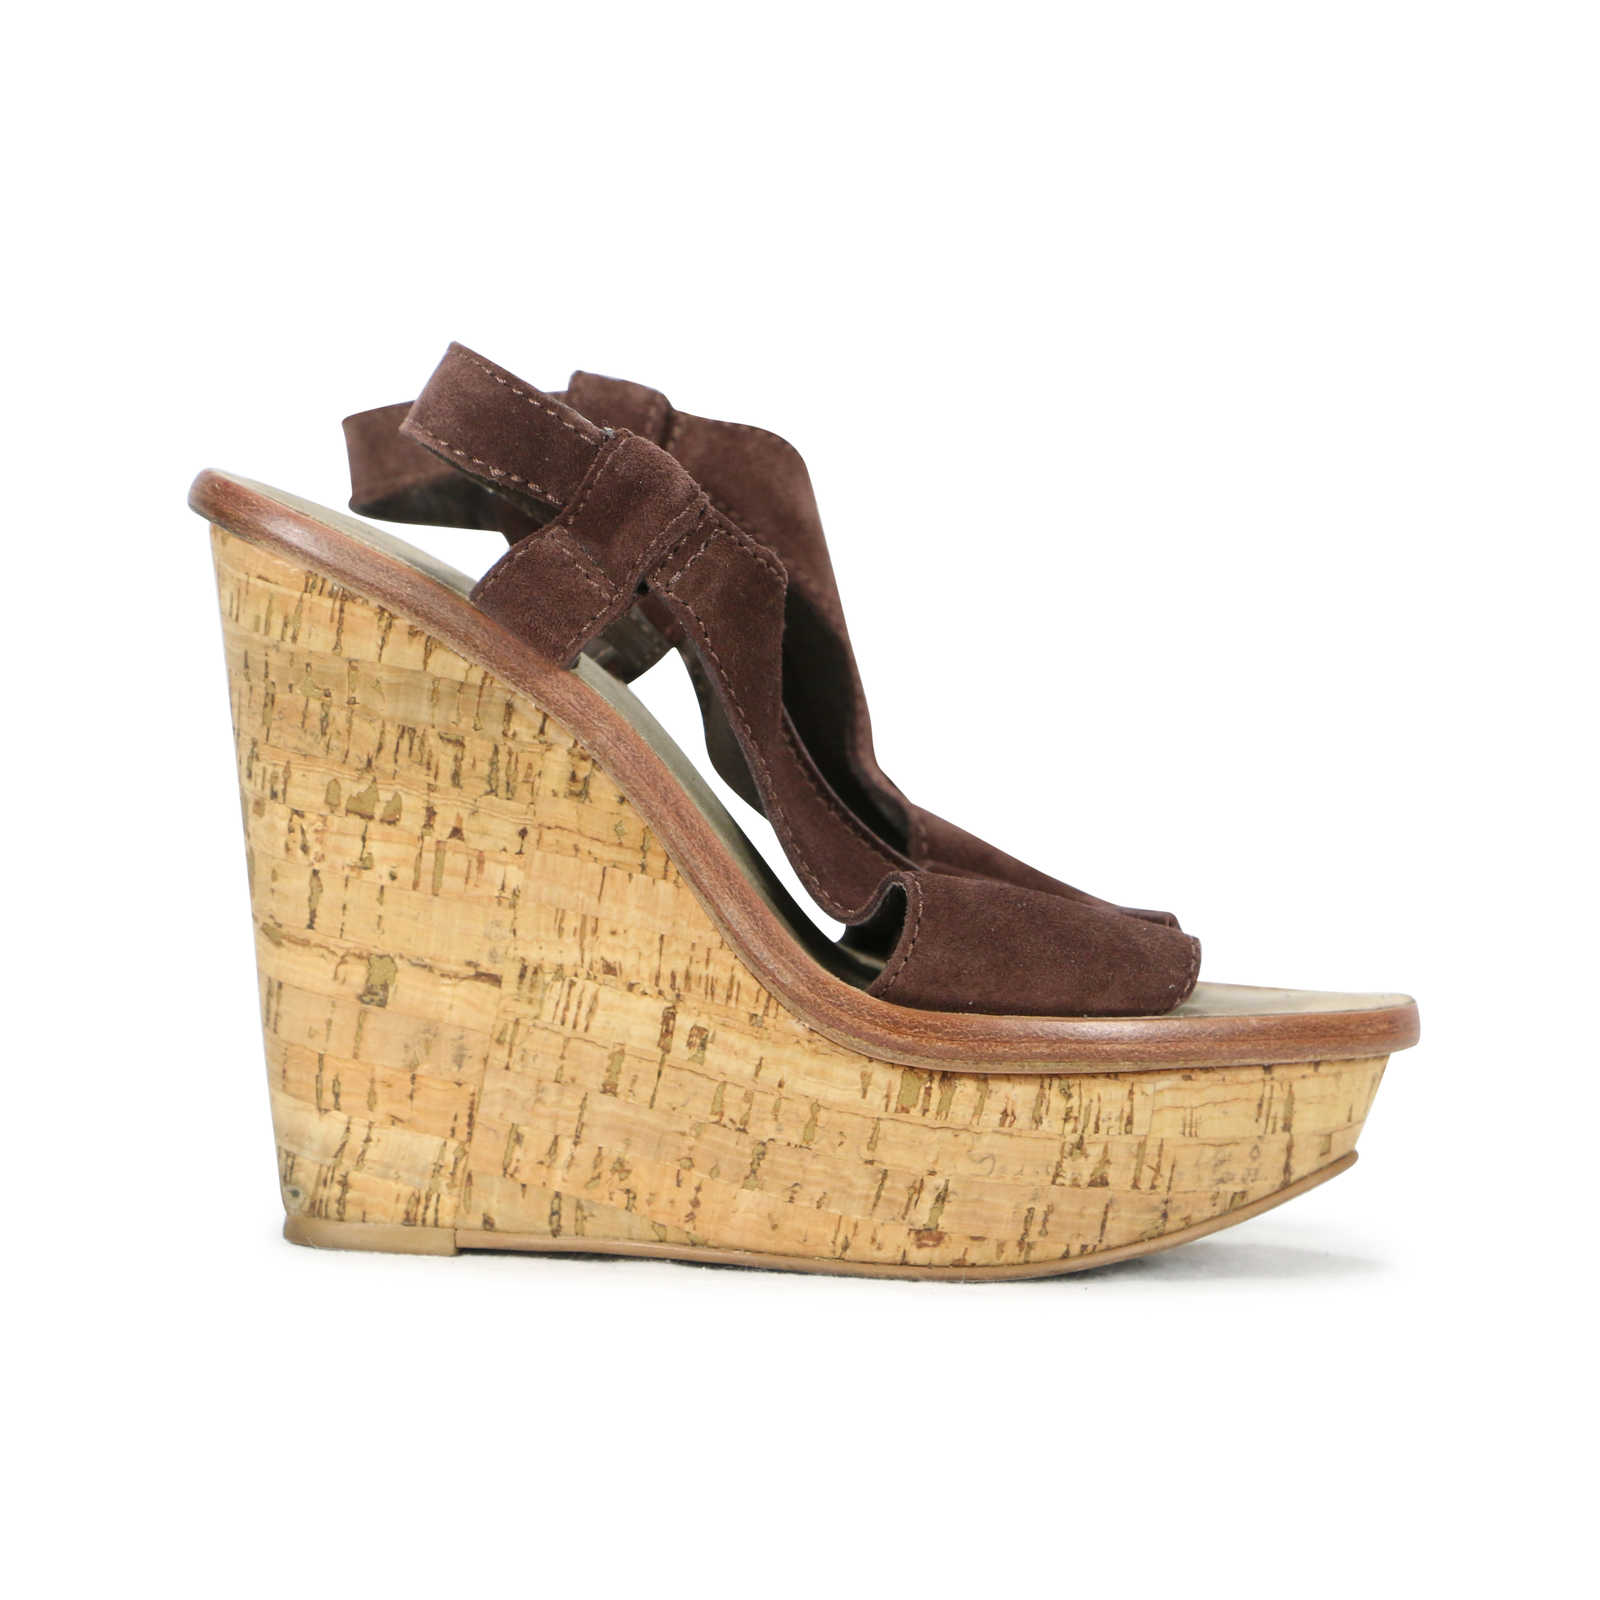 cheap best seller Elizabeth and James Suede Platform Wedges in China cheap price sale Manchester k6dfJh